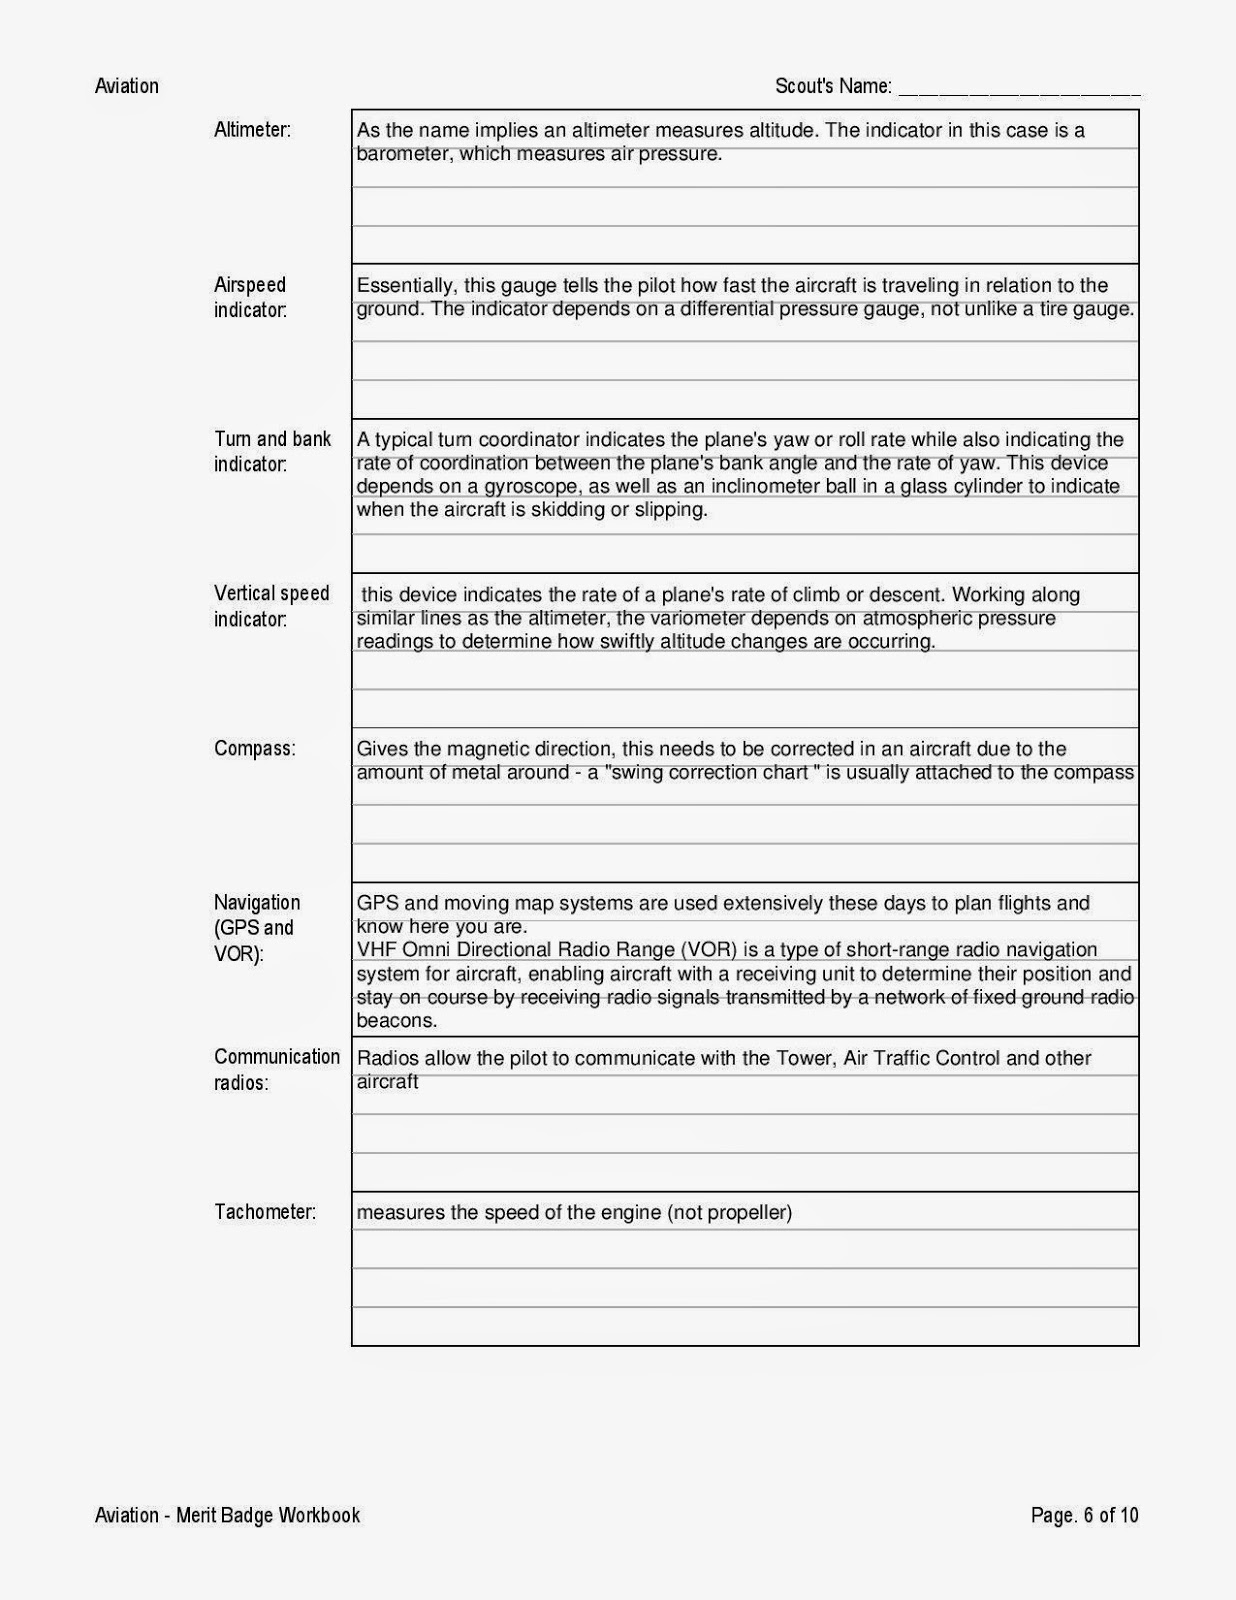 Printables Camping Merit Badge Worksheet Gozoneguide Thousands – Boy Scout Camping Merit Badge Worksheet Answers